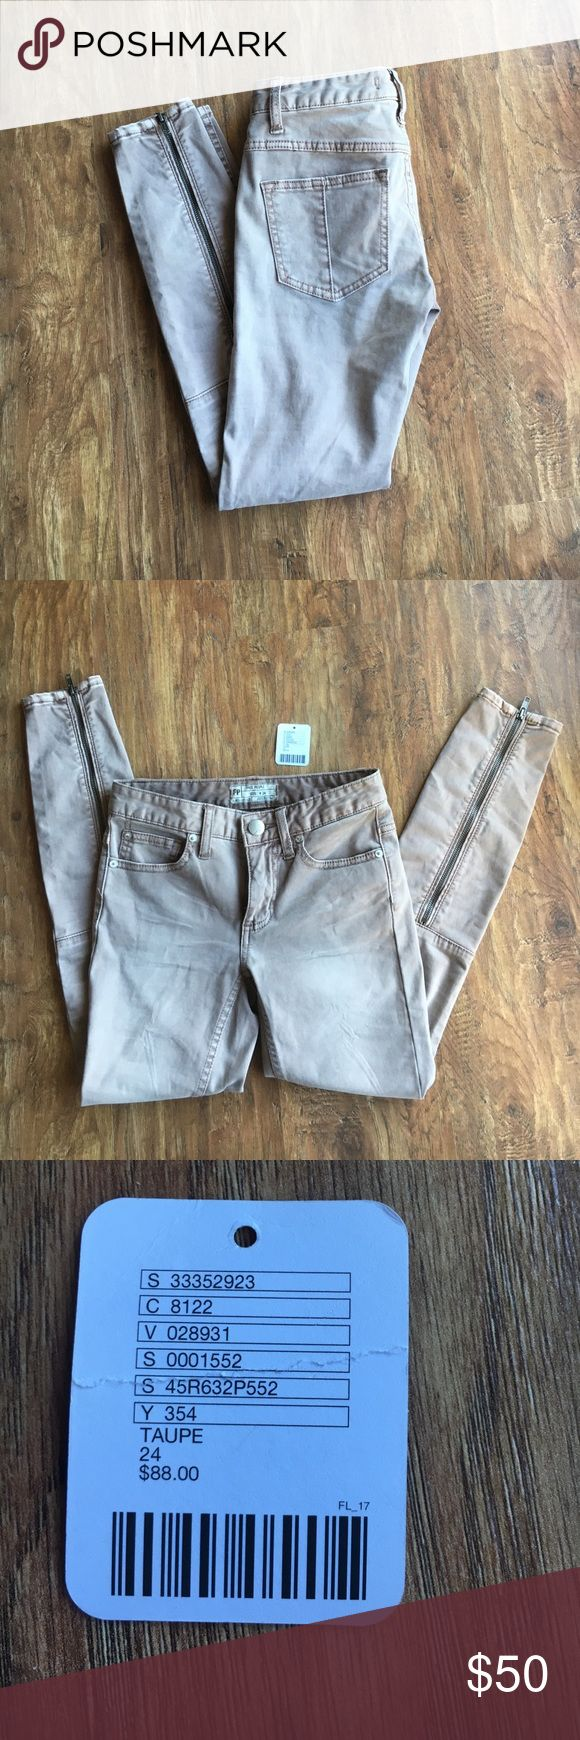 NWOT Free People khaki jeans Brand new, never worn, tag removed but I have it. Size 24. Zippered legs that are so cute. Perfect NEW condition Free People Jeans Skinny